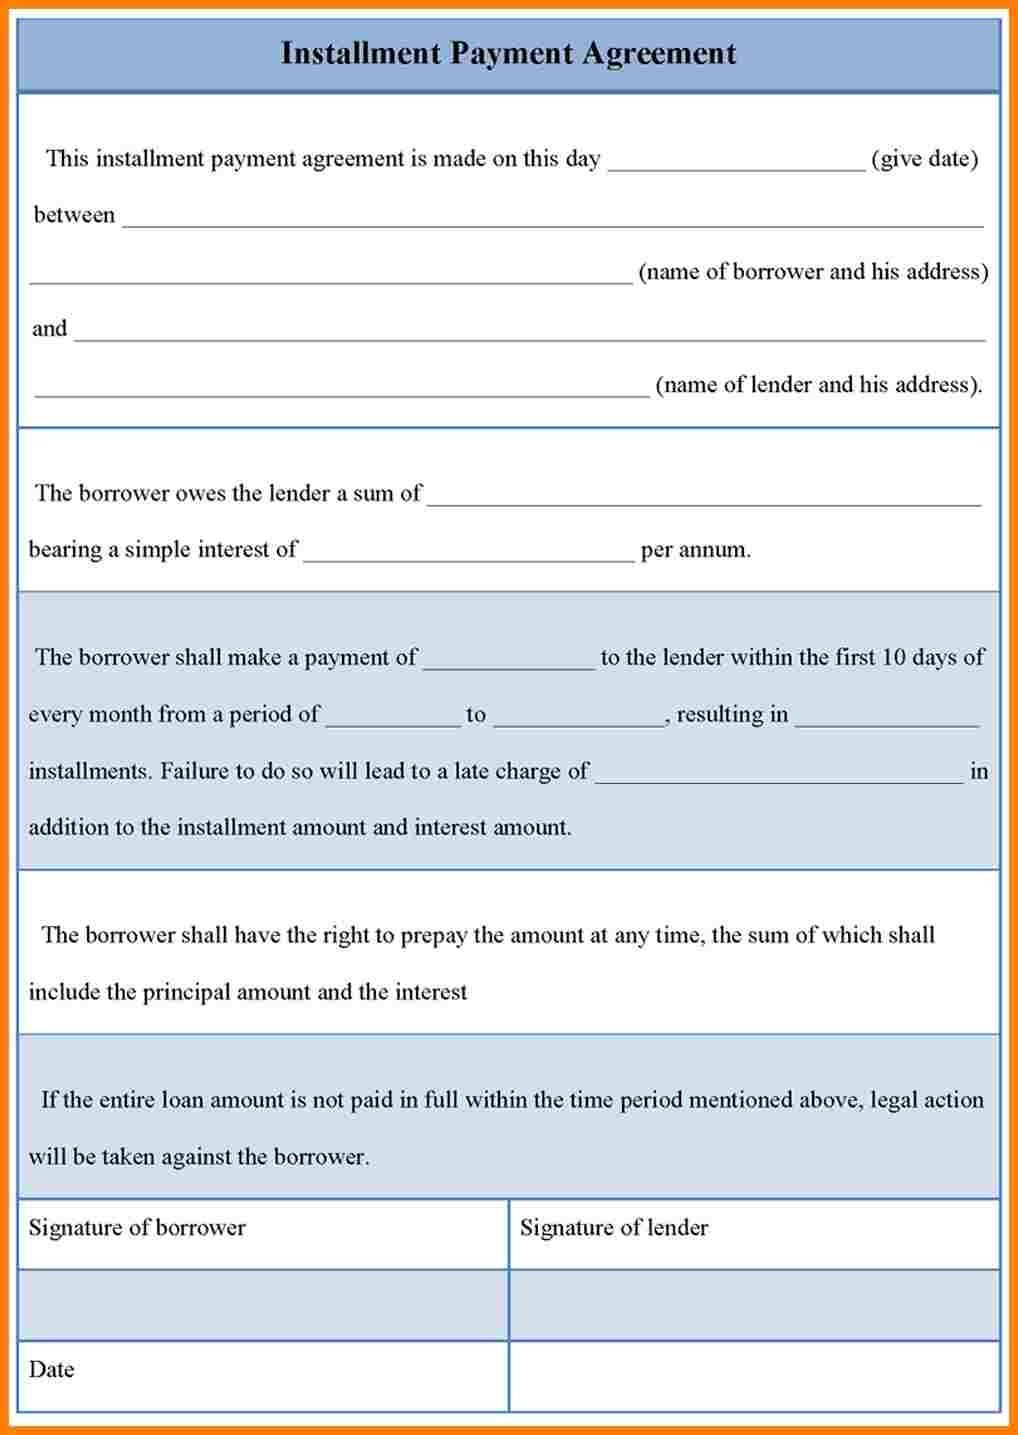 Installment Payment Contract Template 8 Installment Payment Contract Template